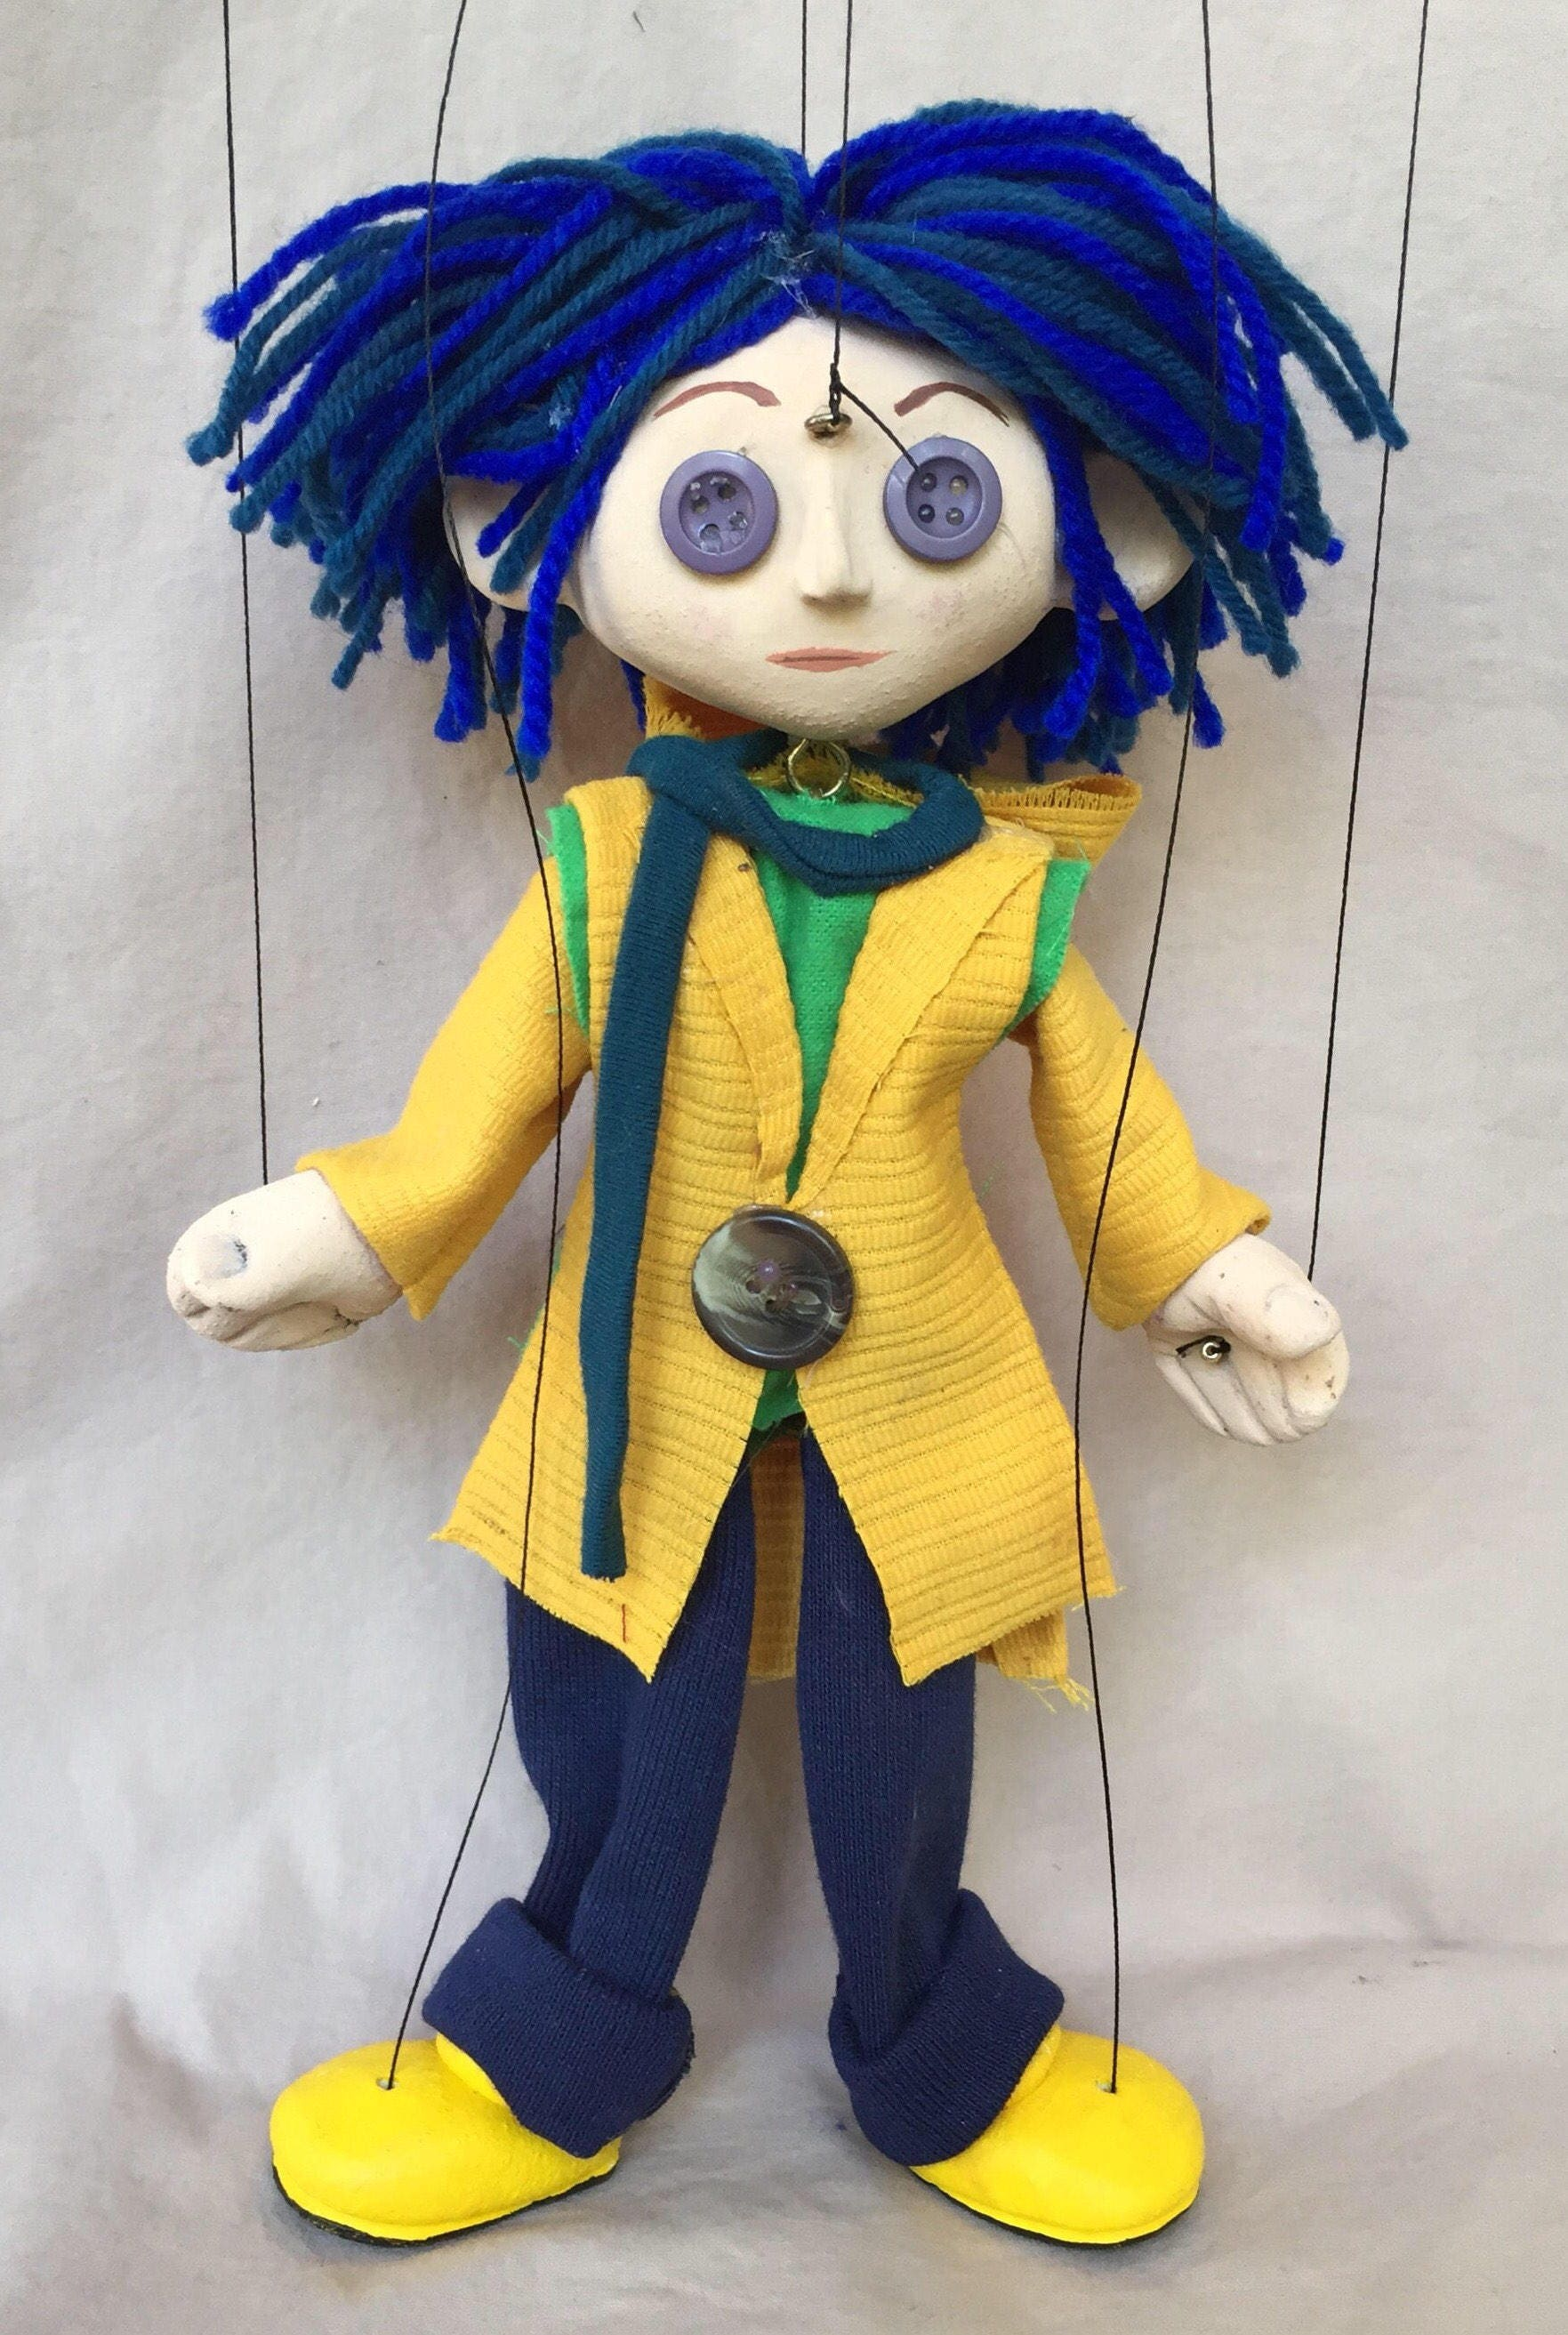 Coraline button eyes. From Tim Burton Film. Handmade